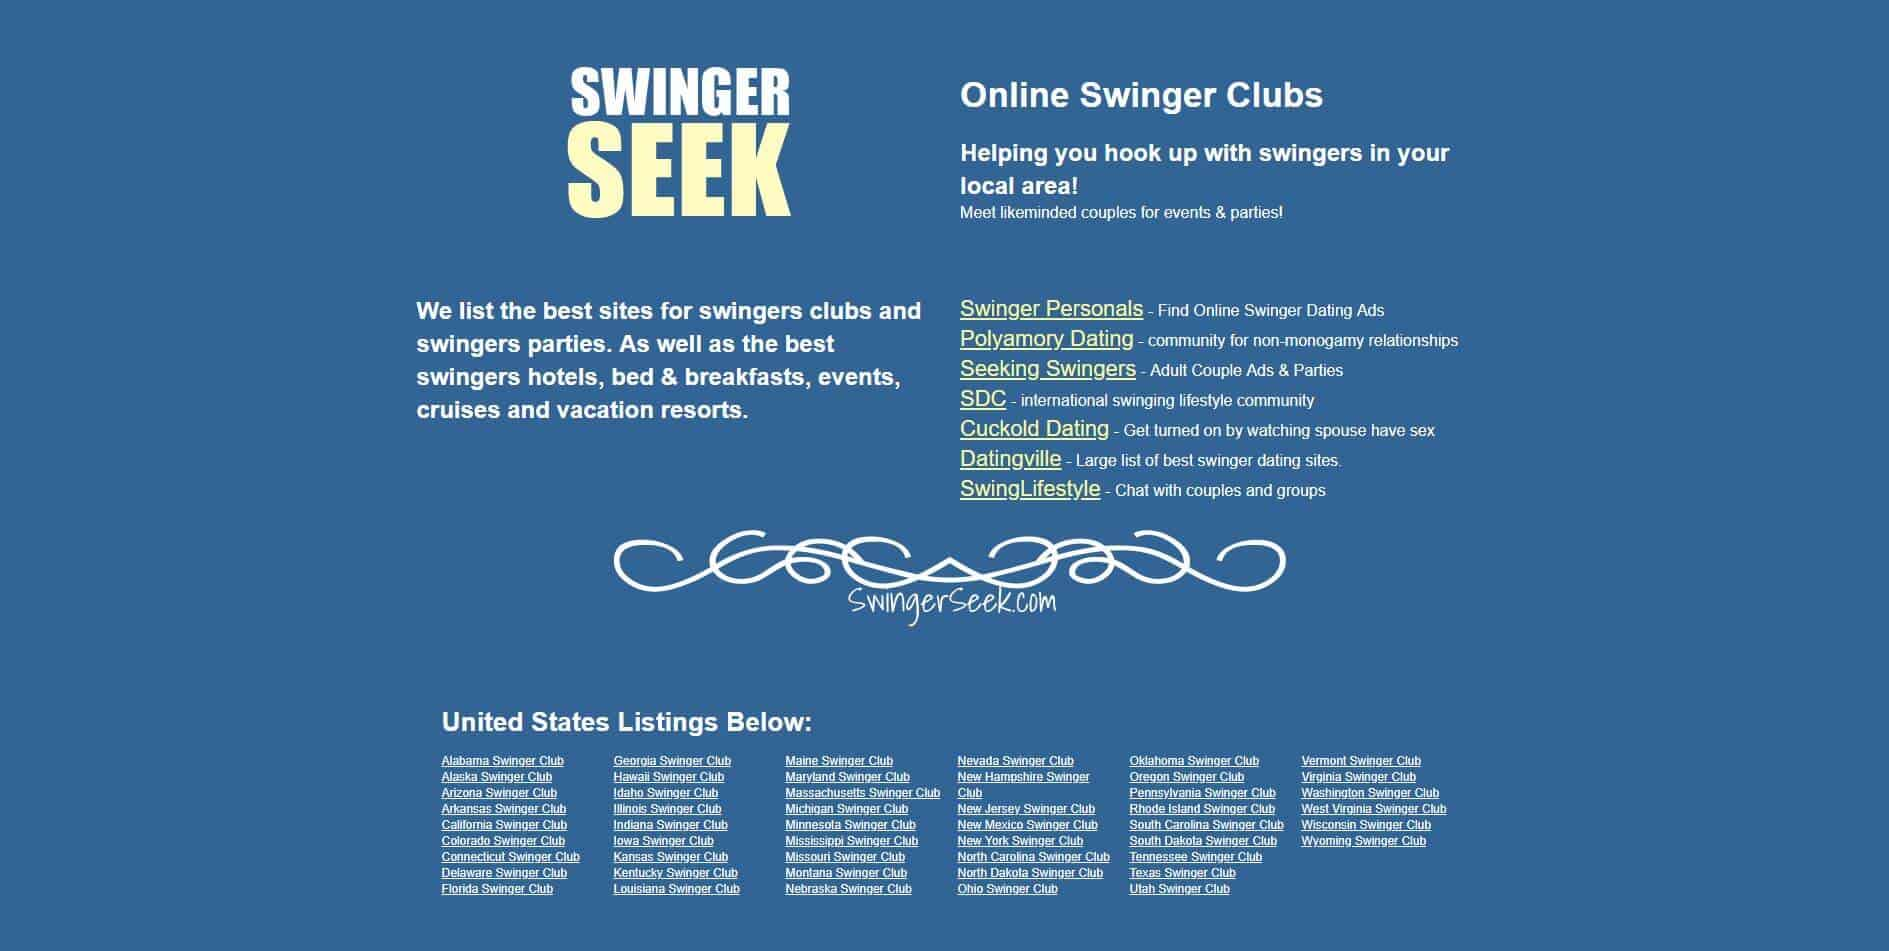 swinger seek